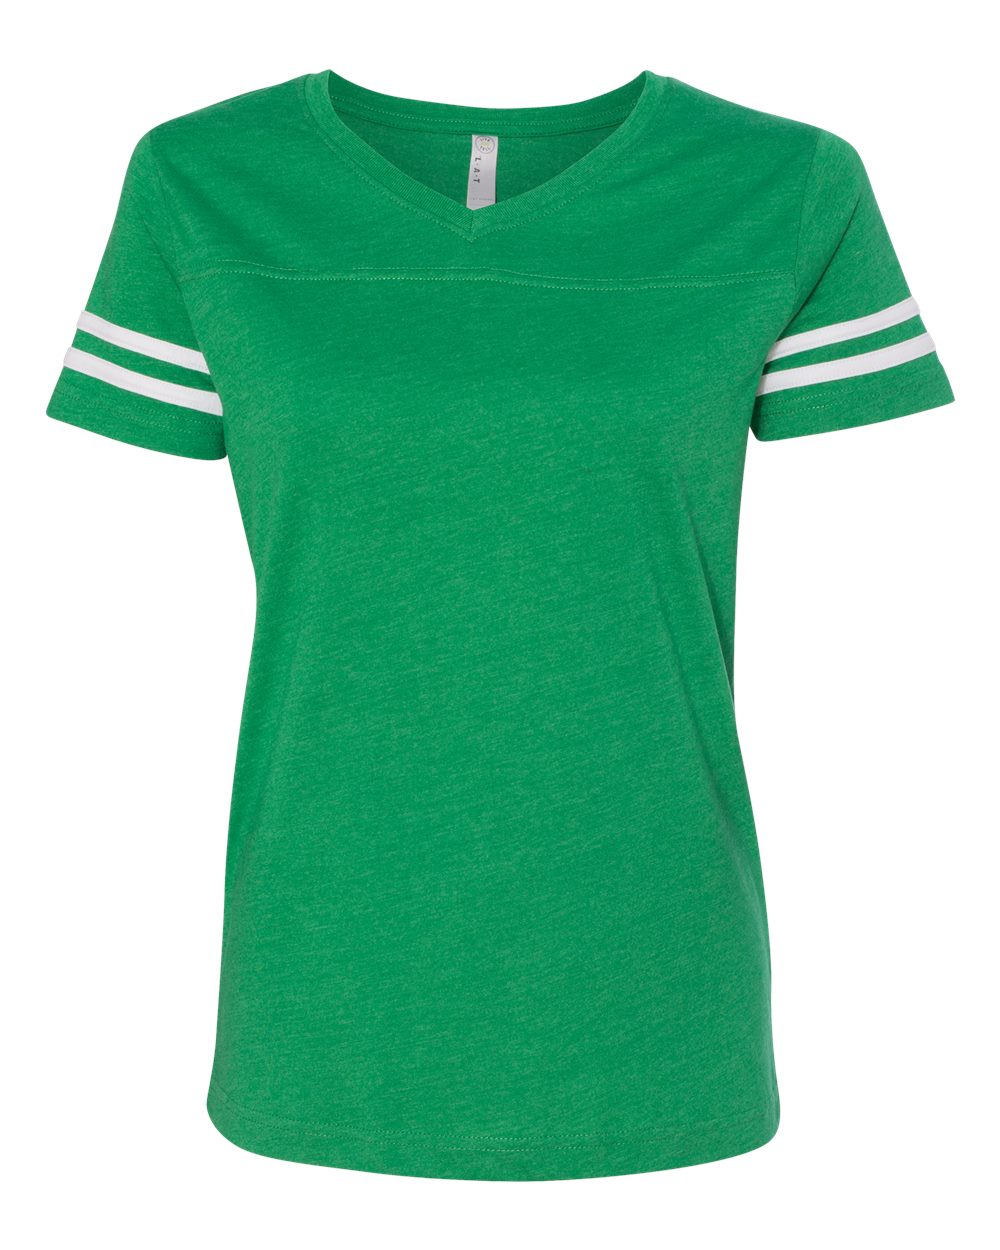 click to view Vintage Green/White